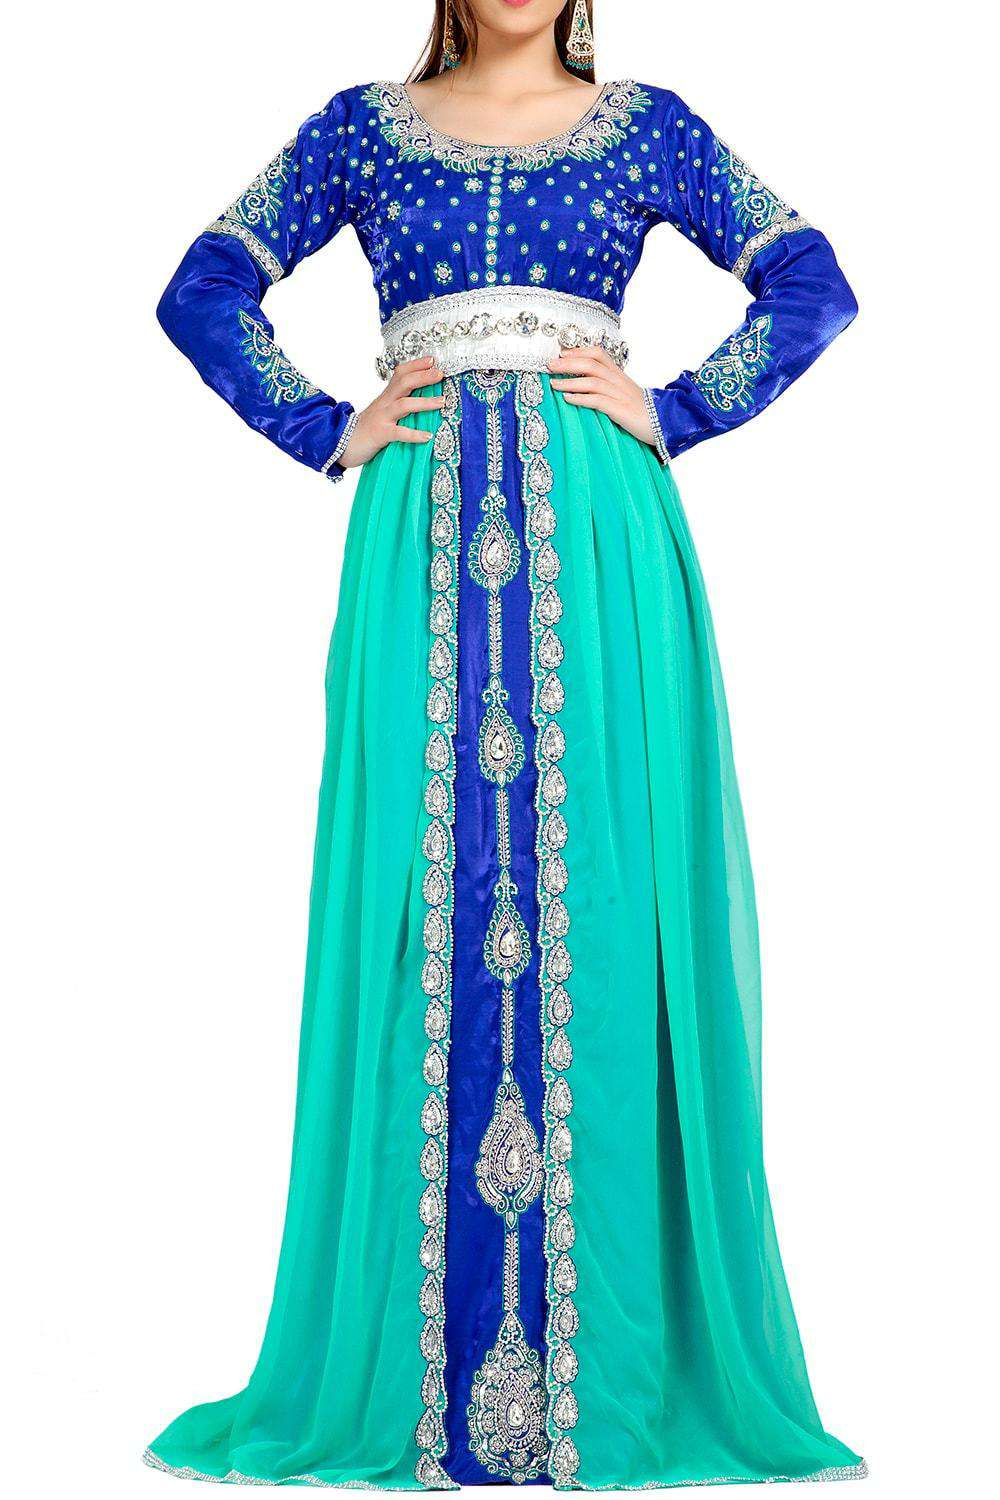 Classic Elegant Blue Embroidered Caftan